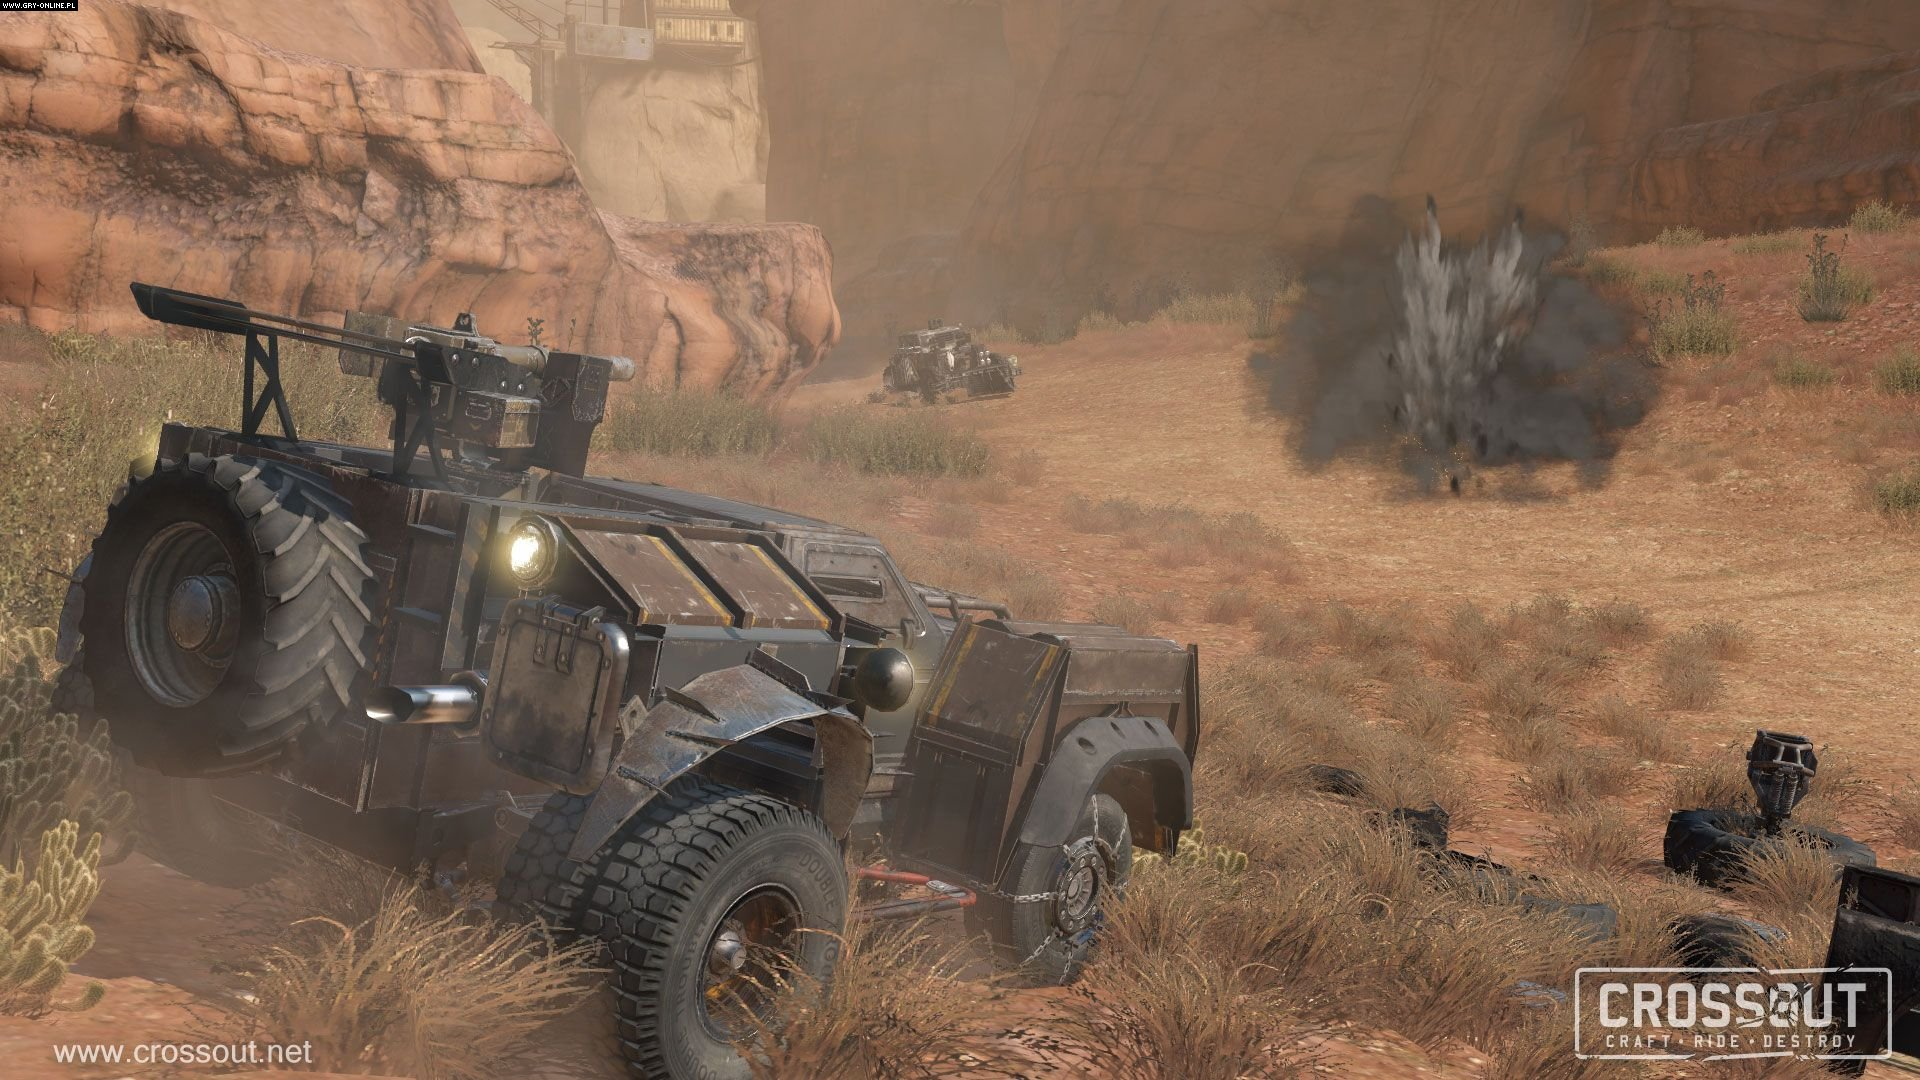 Crossout coupons engineers